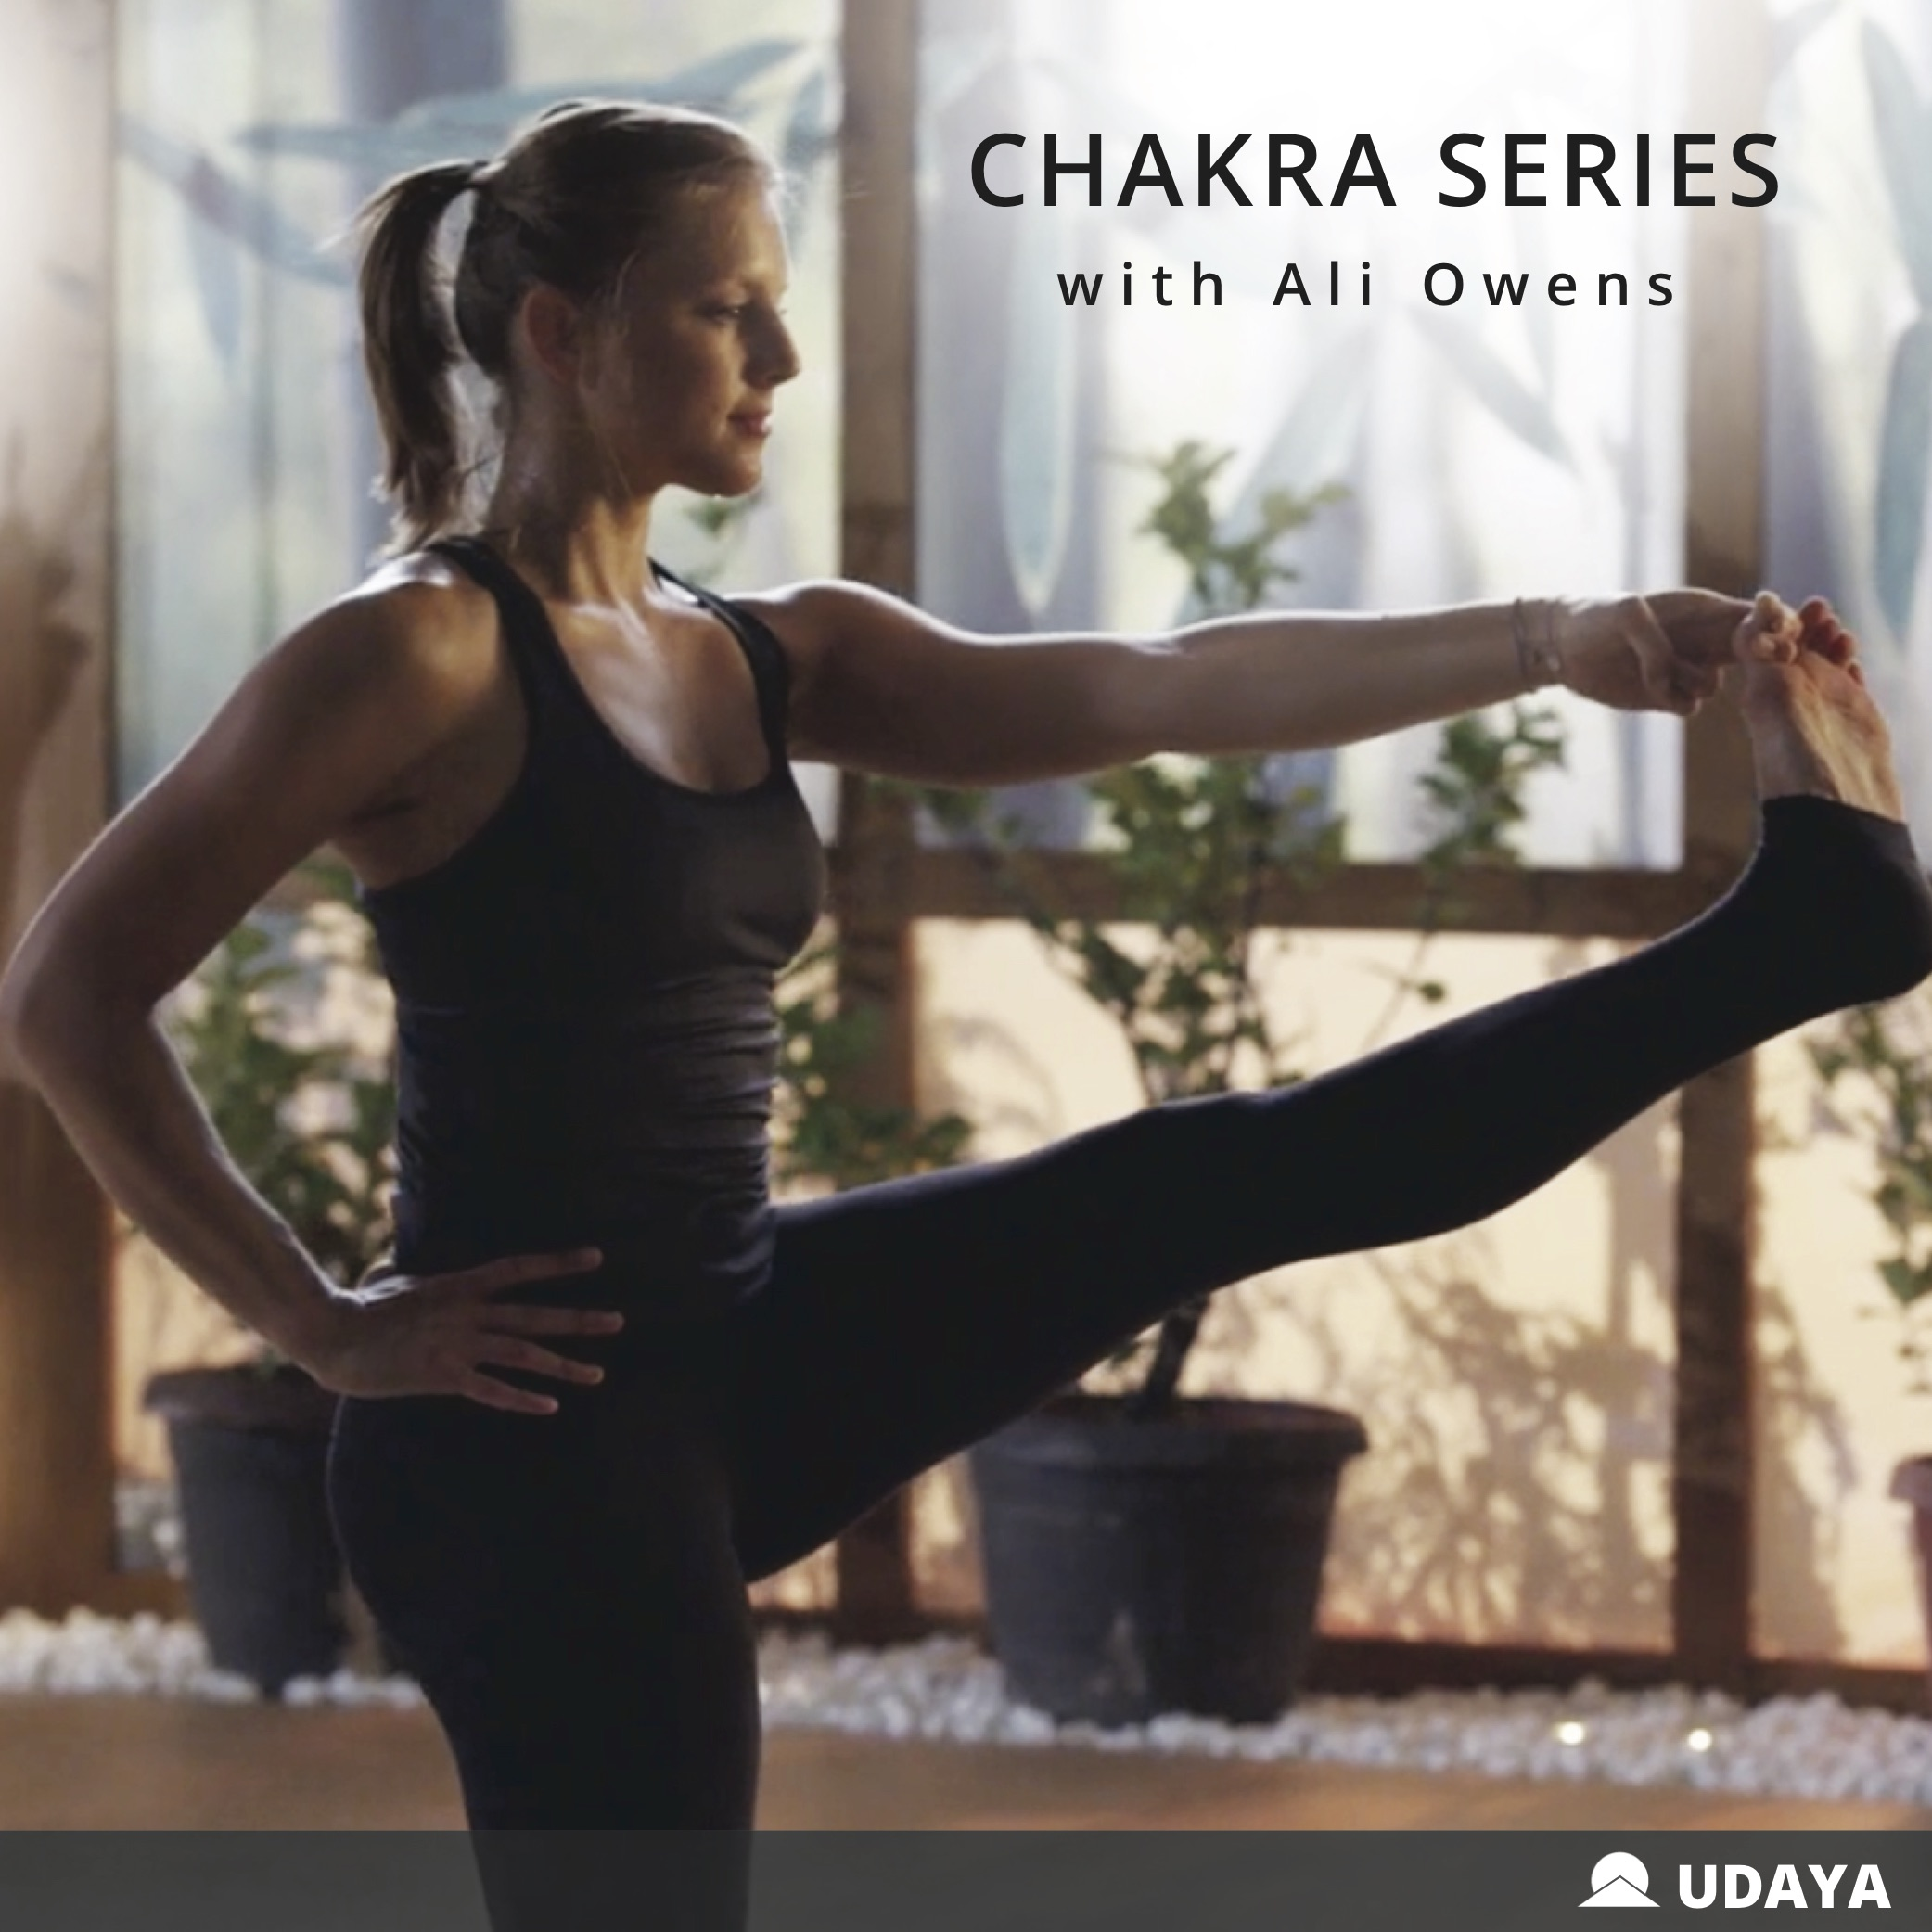 Udaya Yoga - A series of practices designed to teach you and guide you through the 7-main chakras, or wheels of energy, in your energetic body. There are 6 vinyasa based classes designed to open up and balance the first six chakras and one meditation for the 7th chakra. The series finishes with a personal practice that brings all the lessons together into one 40 minute flow.For more information visit Udaya.com and use code CHAKRASERT5 to save on your program.